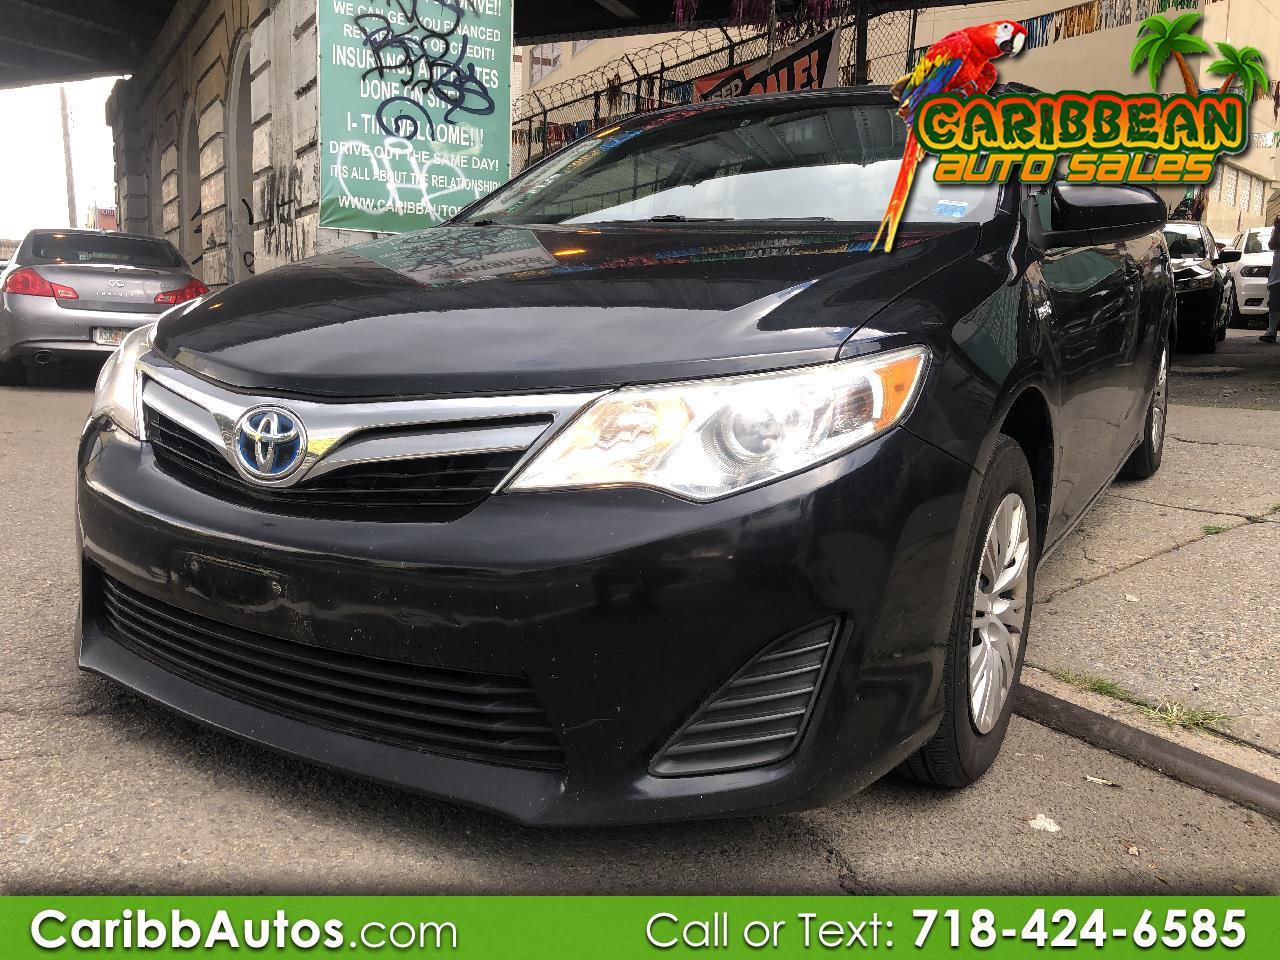 Toyota Camry Hybrid 2014.5 4dr Sdn SE Limited Edition (Natl) 2014